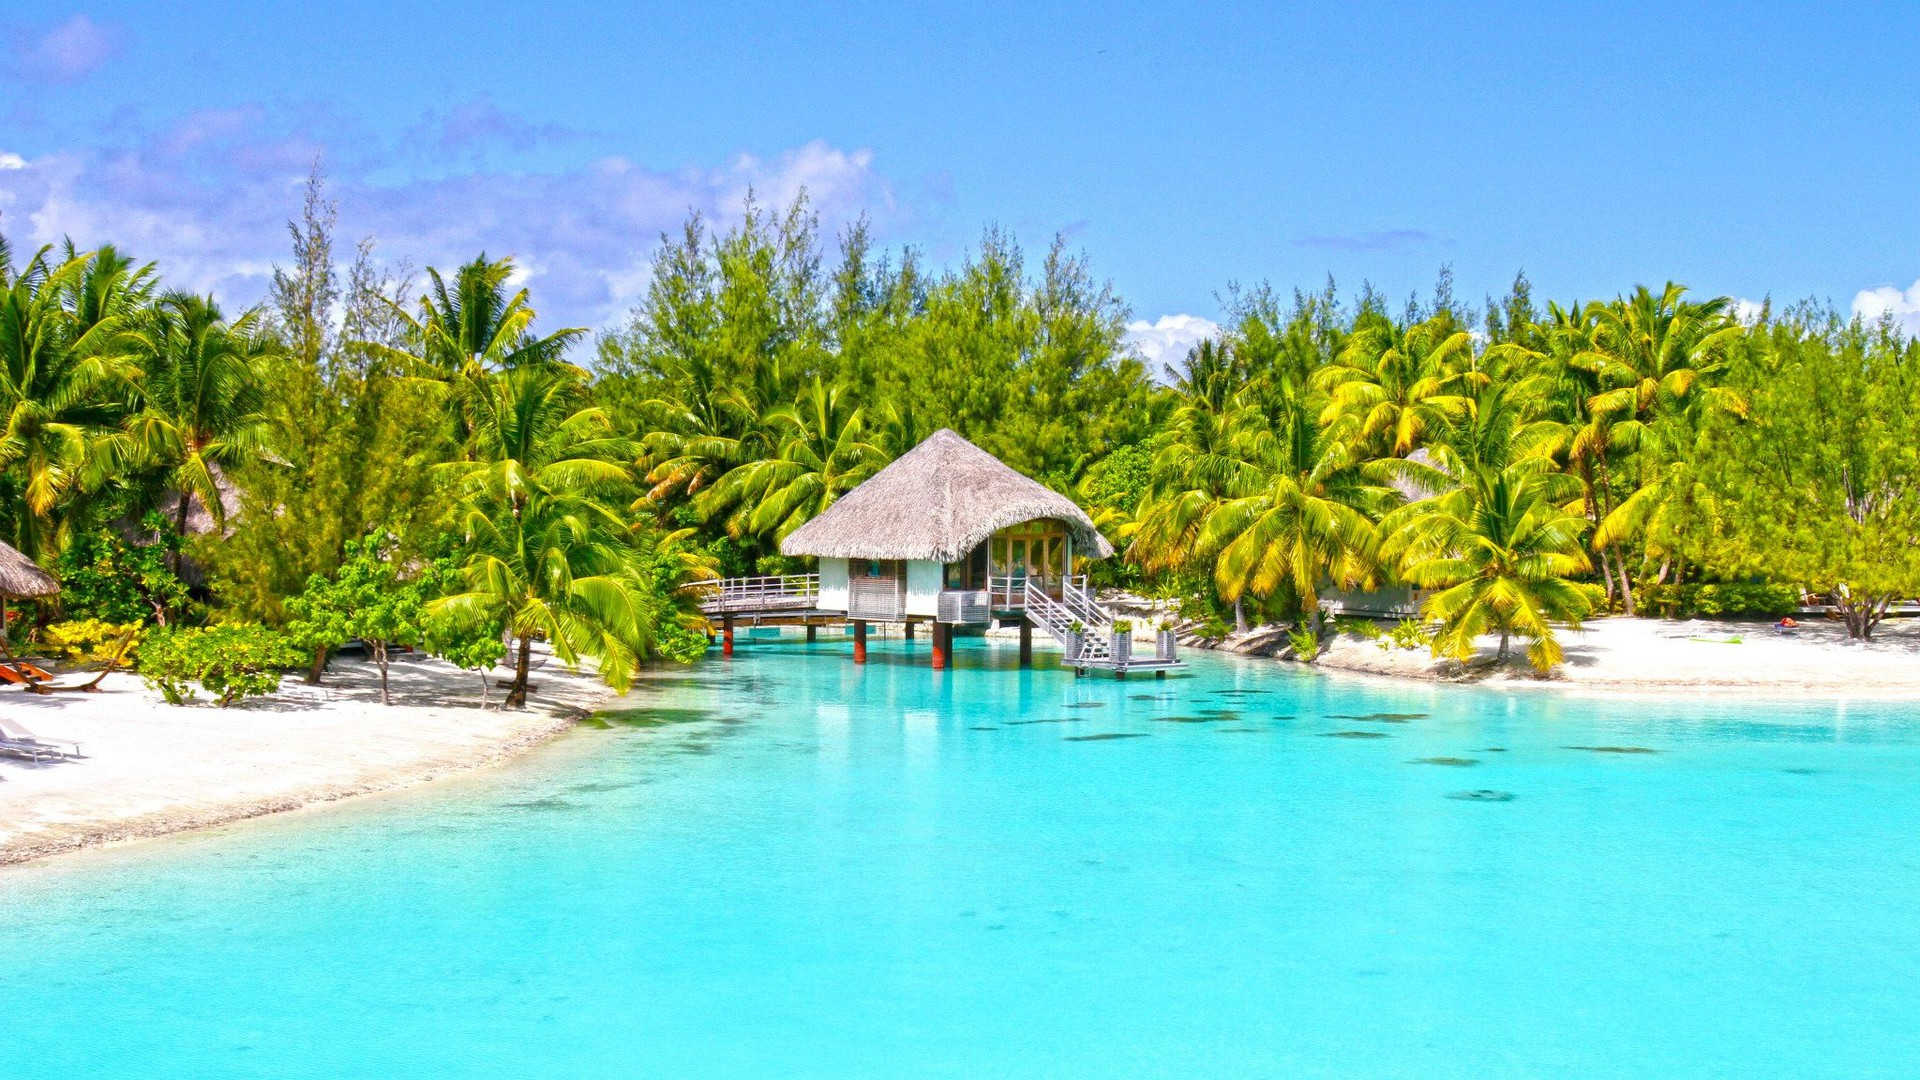 Hd Tropical Island Beach Paradise Wallpapers And Backgrounds: White Sand Beach On Paradise Island Bora Wallpaper